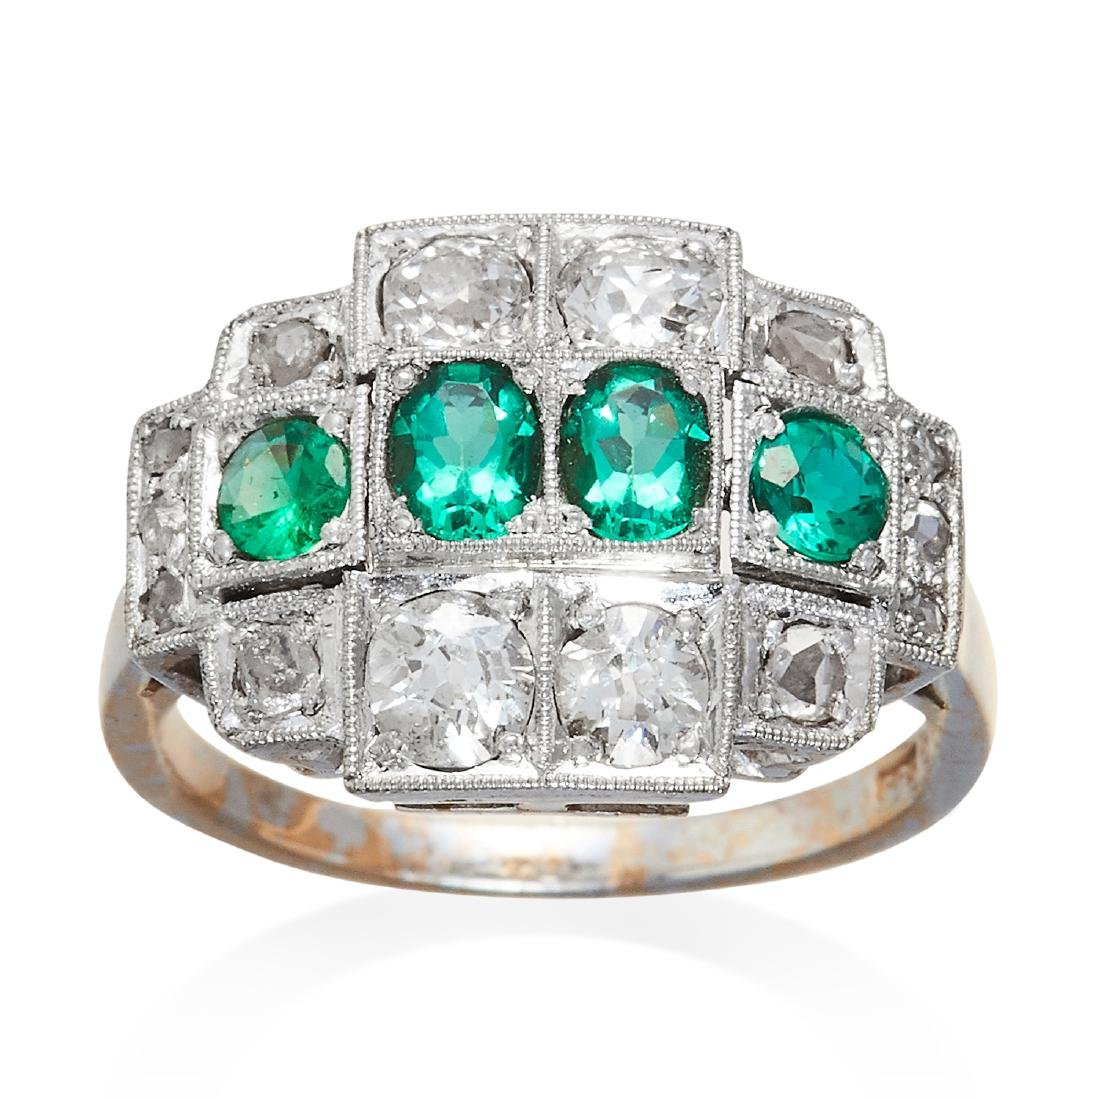 AN ANTIQUE EMERALD AND DIAMOND RING in white gold, four